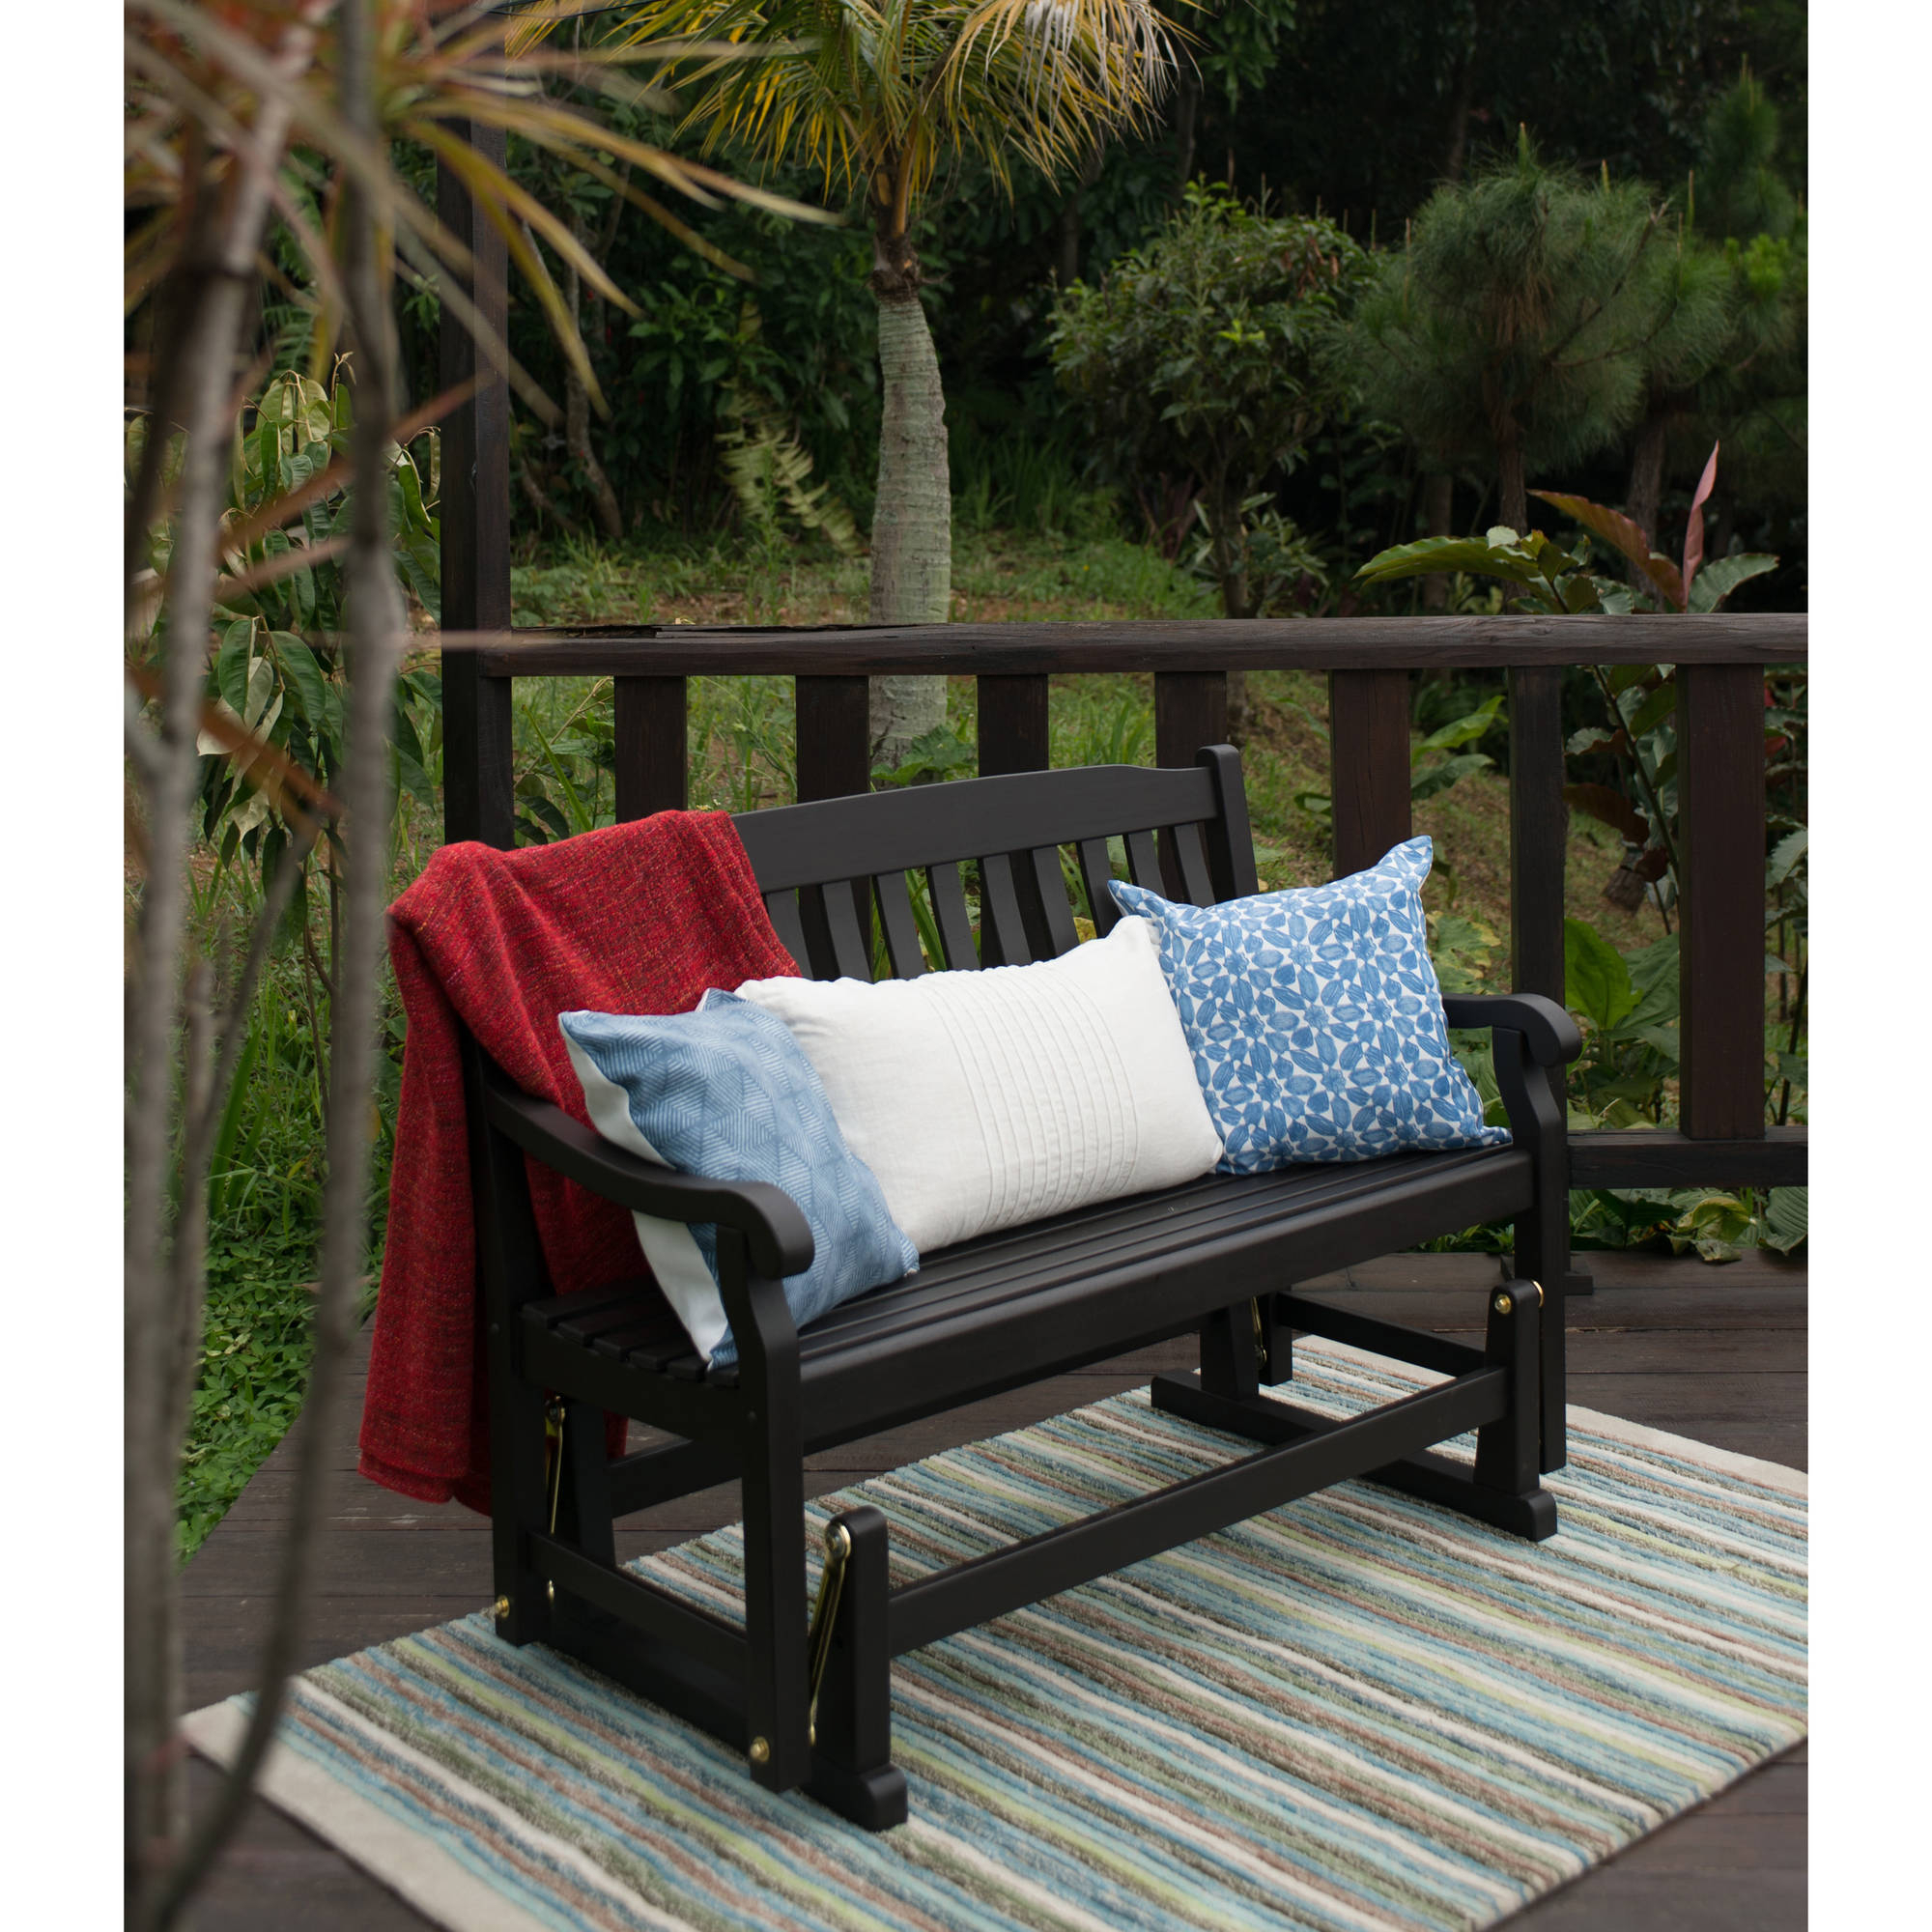 Better Homes & Gardens Delahey Outdoor Glider Bench, Dark Pertaining To Glider Benches With Cushion (Image 2 of 25)